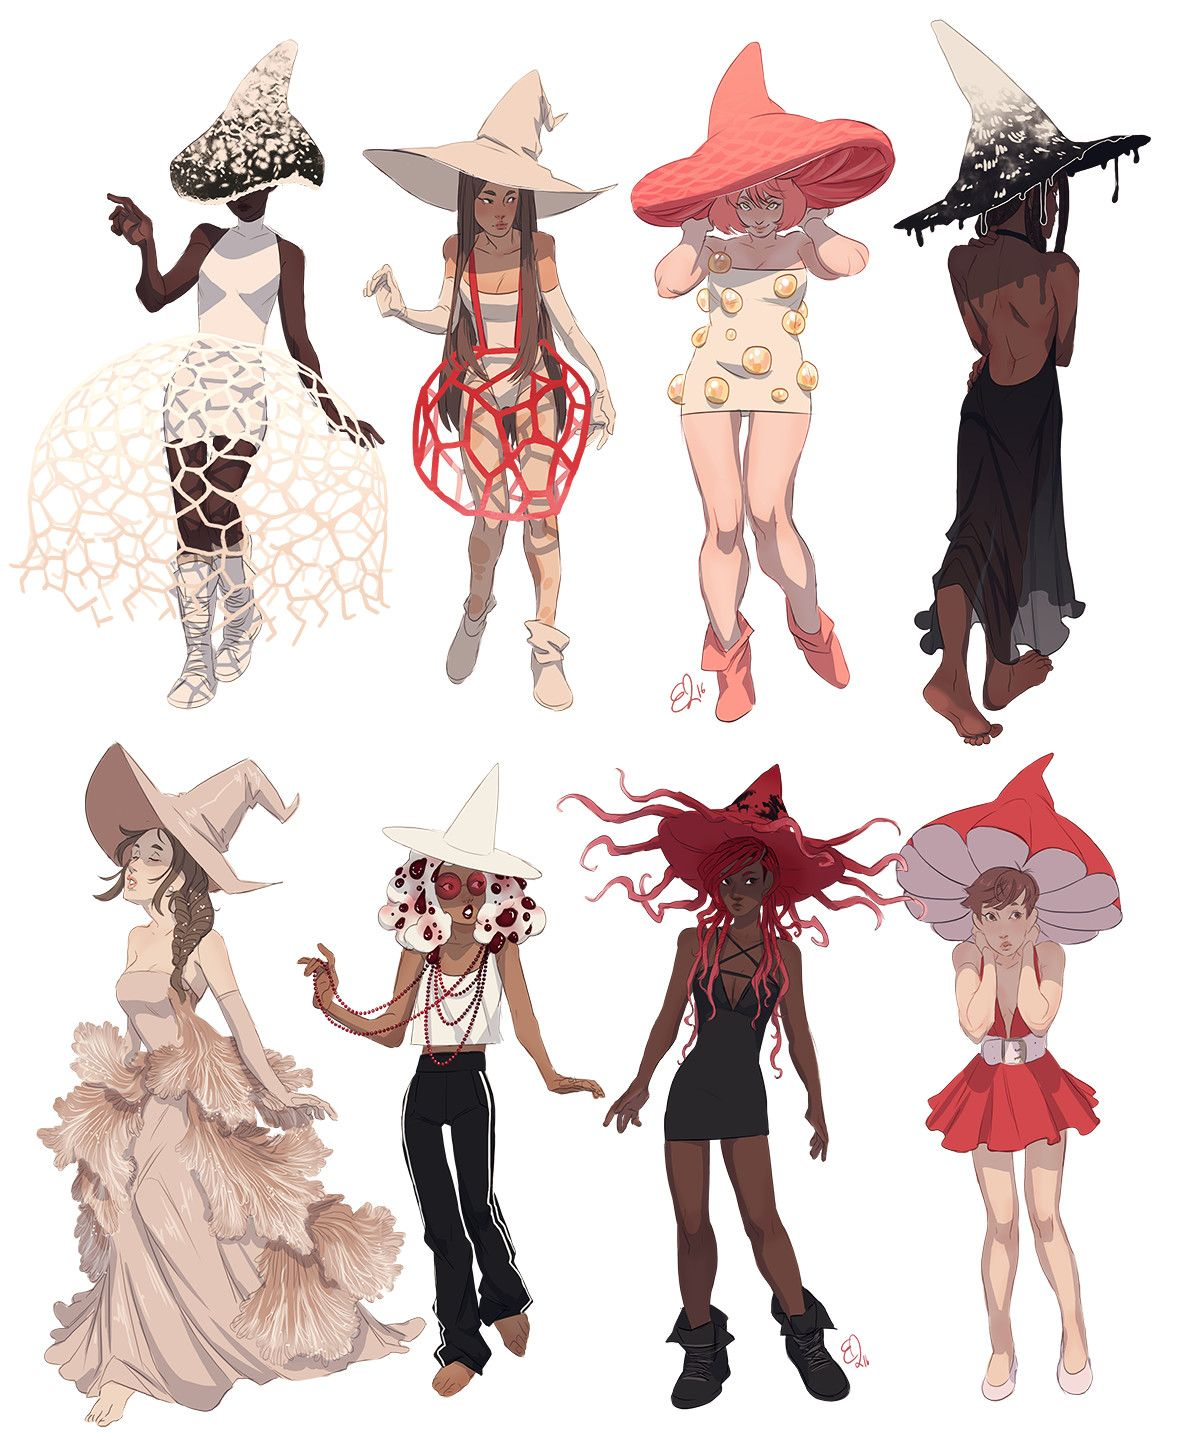 They Were Made By Someone As Witches But For Flower Kingdom They